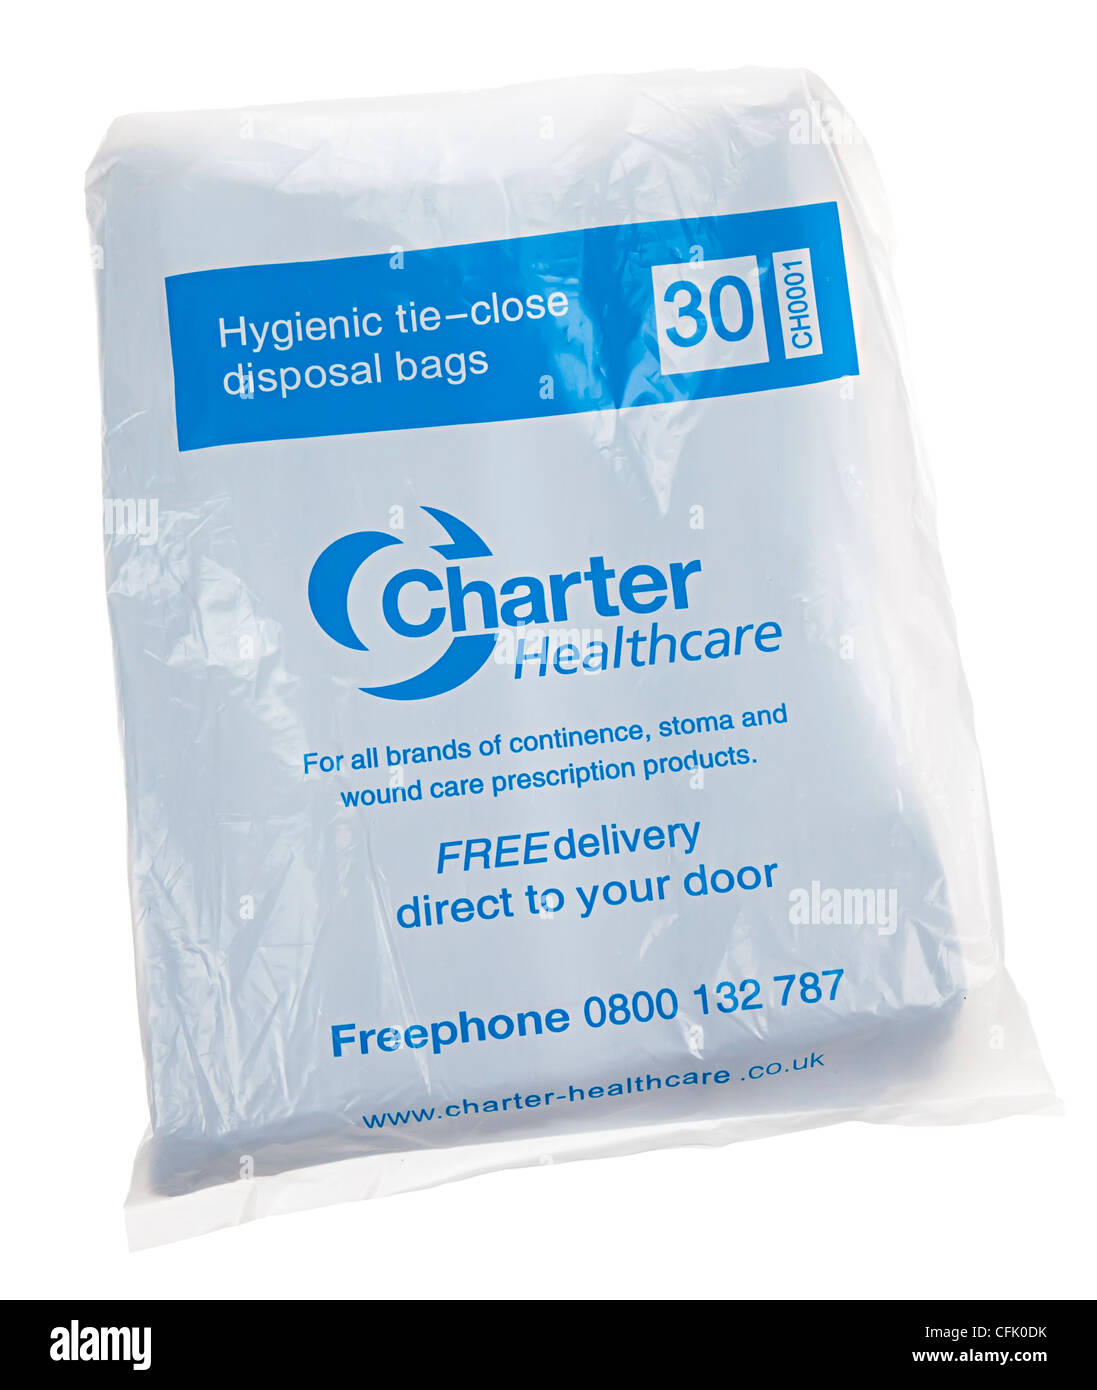 Hygienic tie close disposal bags for medical waste incontinence home use, UK - Stock Image